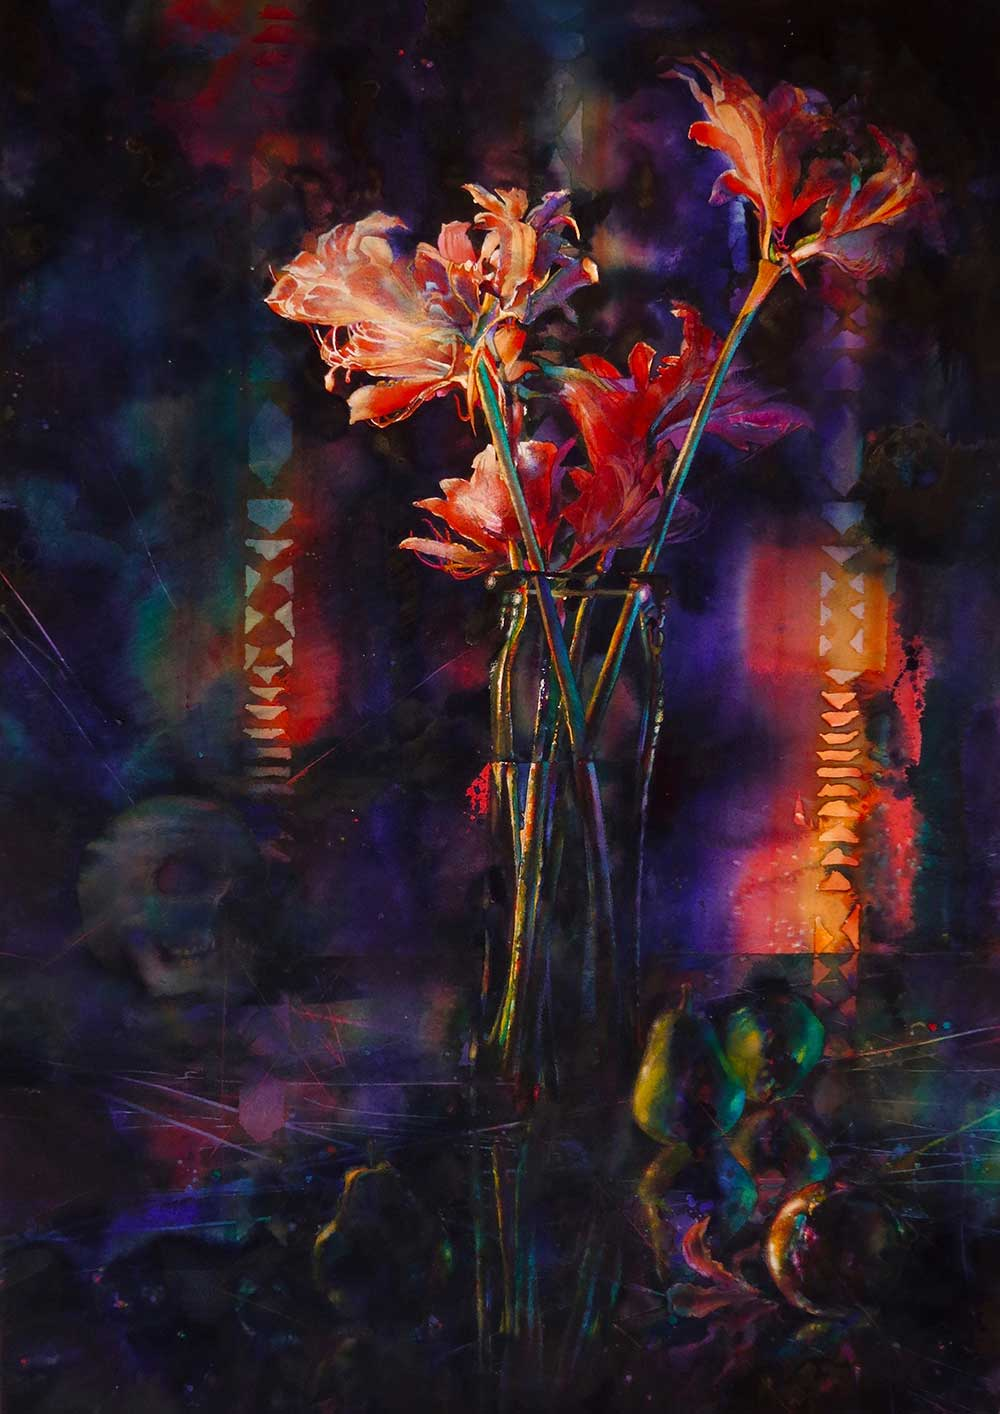 """Anterroom"" a watercolor painting by Mississippi artist Brent Funderburk - shows peach flowers in foreground, background is darker with blues and purples, a skull and pears are seen"